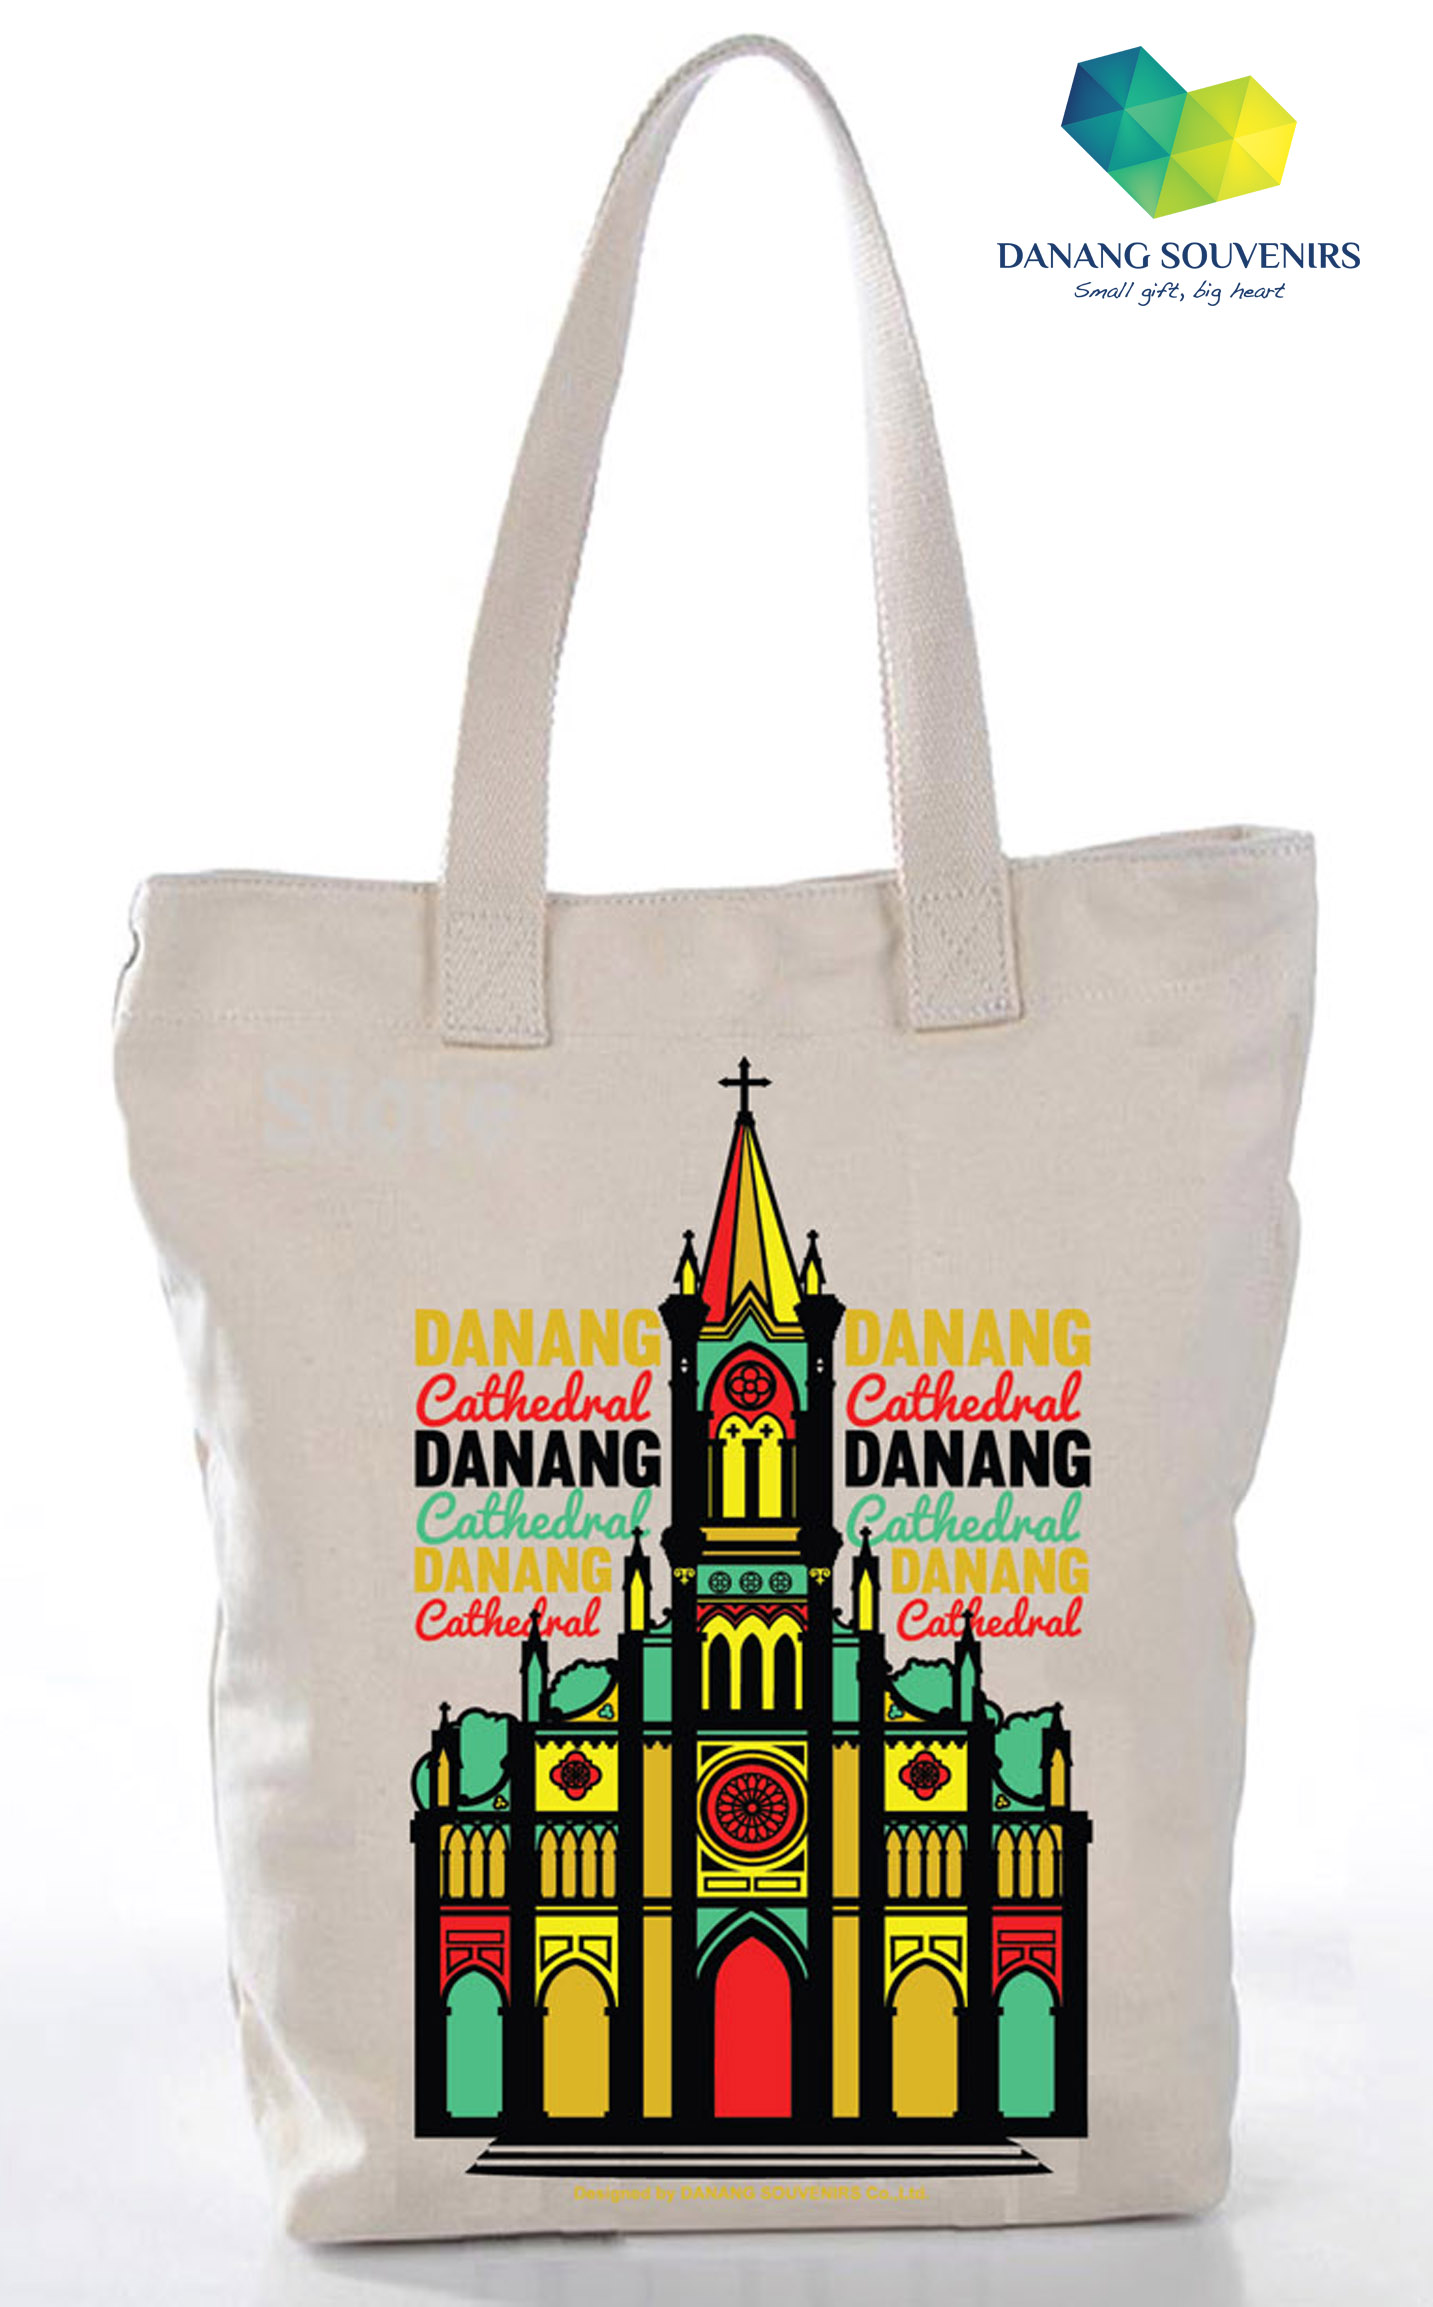 Danang Cathedral  120 000 VND  32 x 40 cm